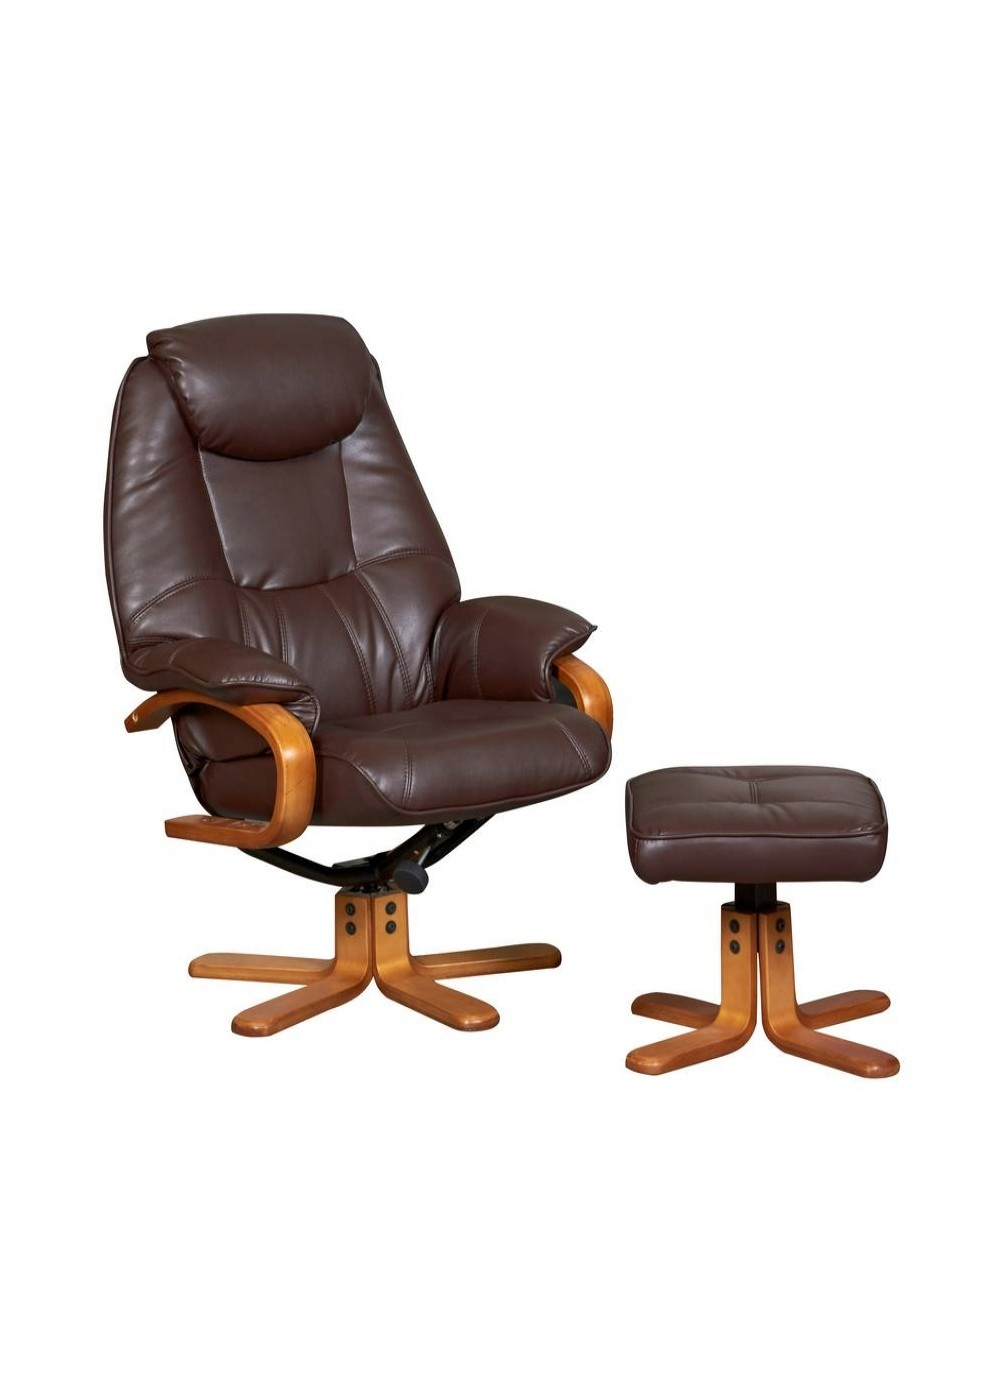 office reclining chair. Atlanta Luxury Reclining Chair With Stool 6924 - Chocolate Enlarged View Office R